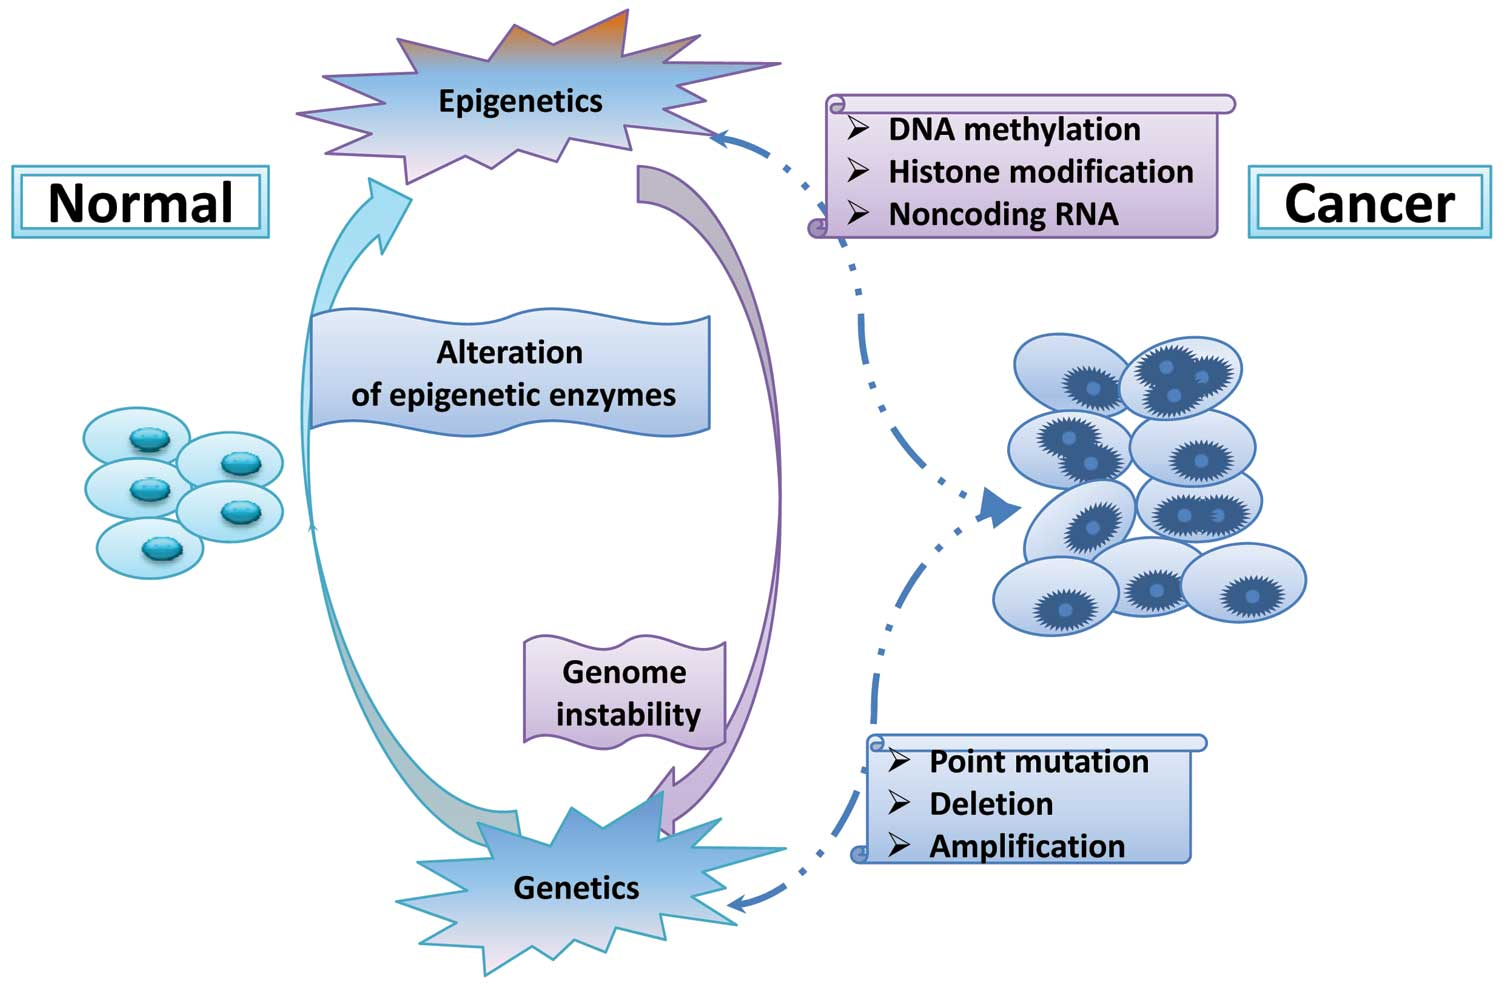 Oncology ReportsEpigenetic regulation and cancer (Review)